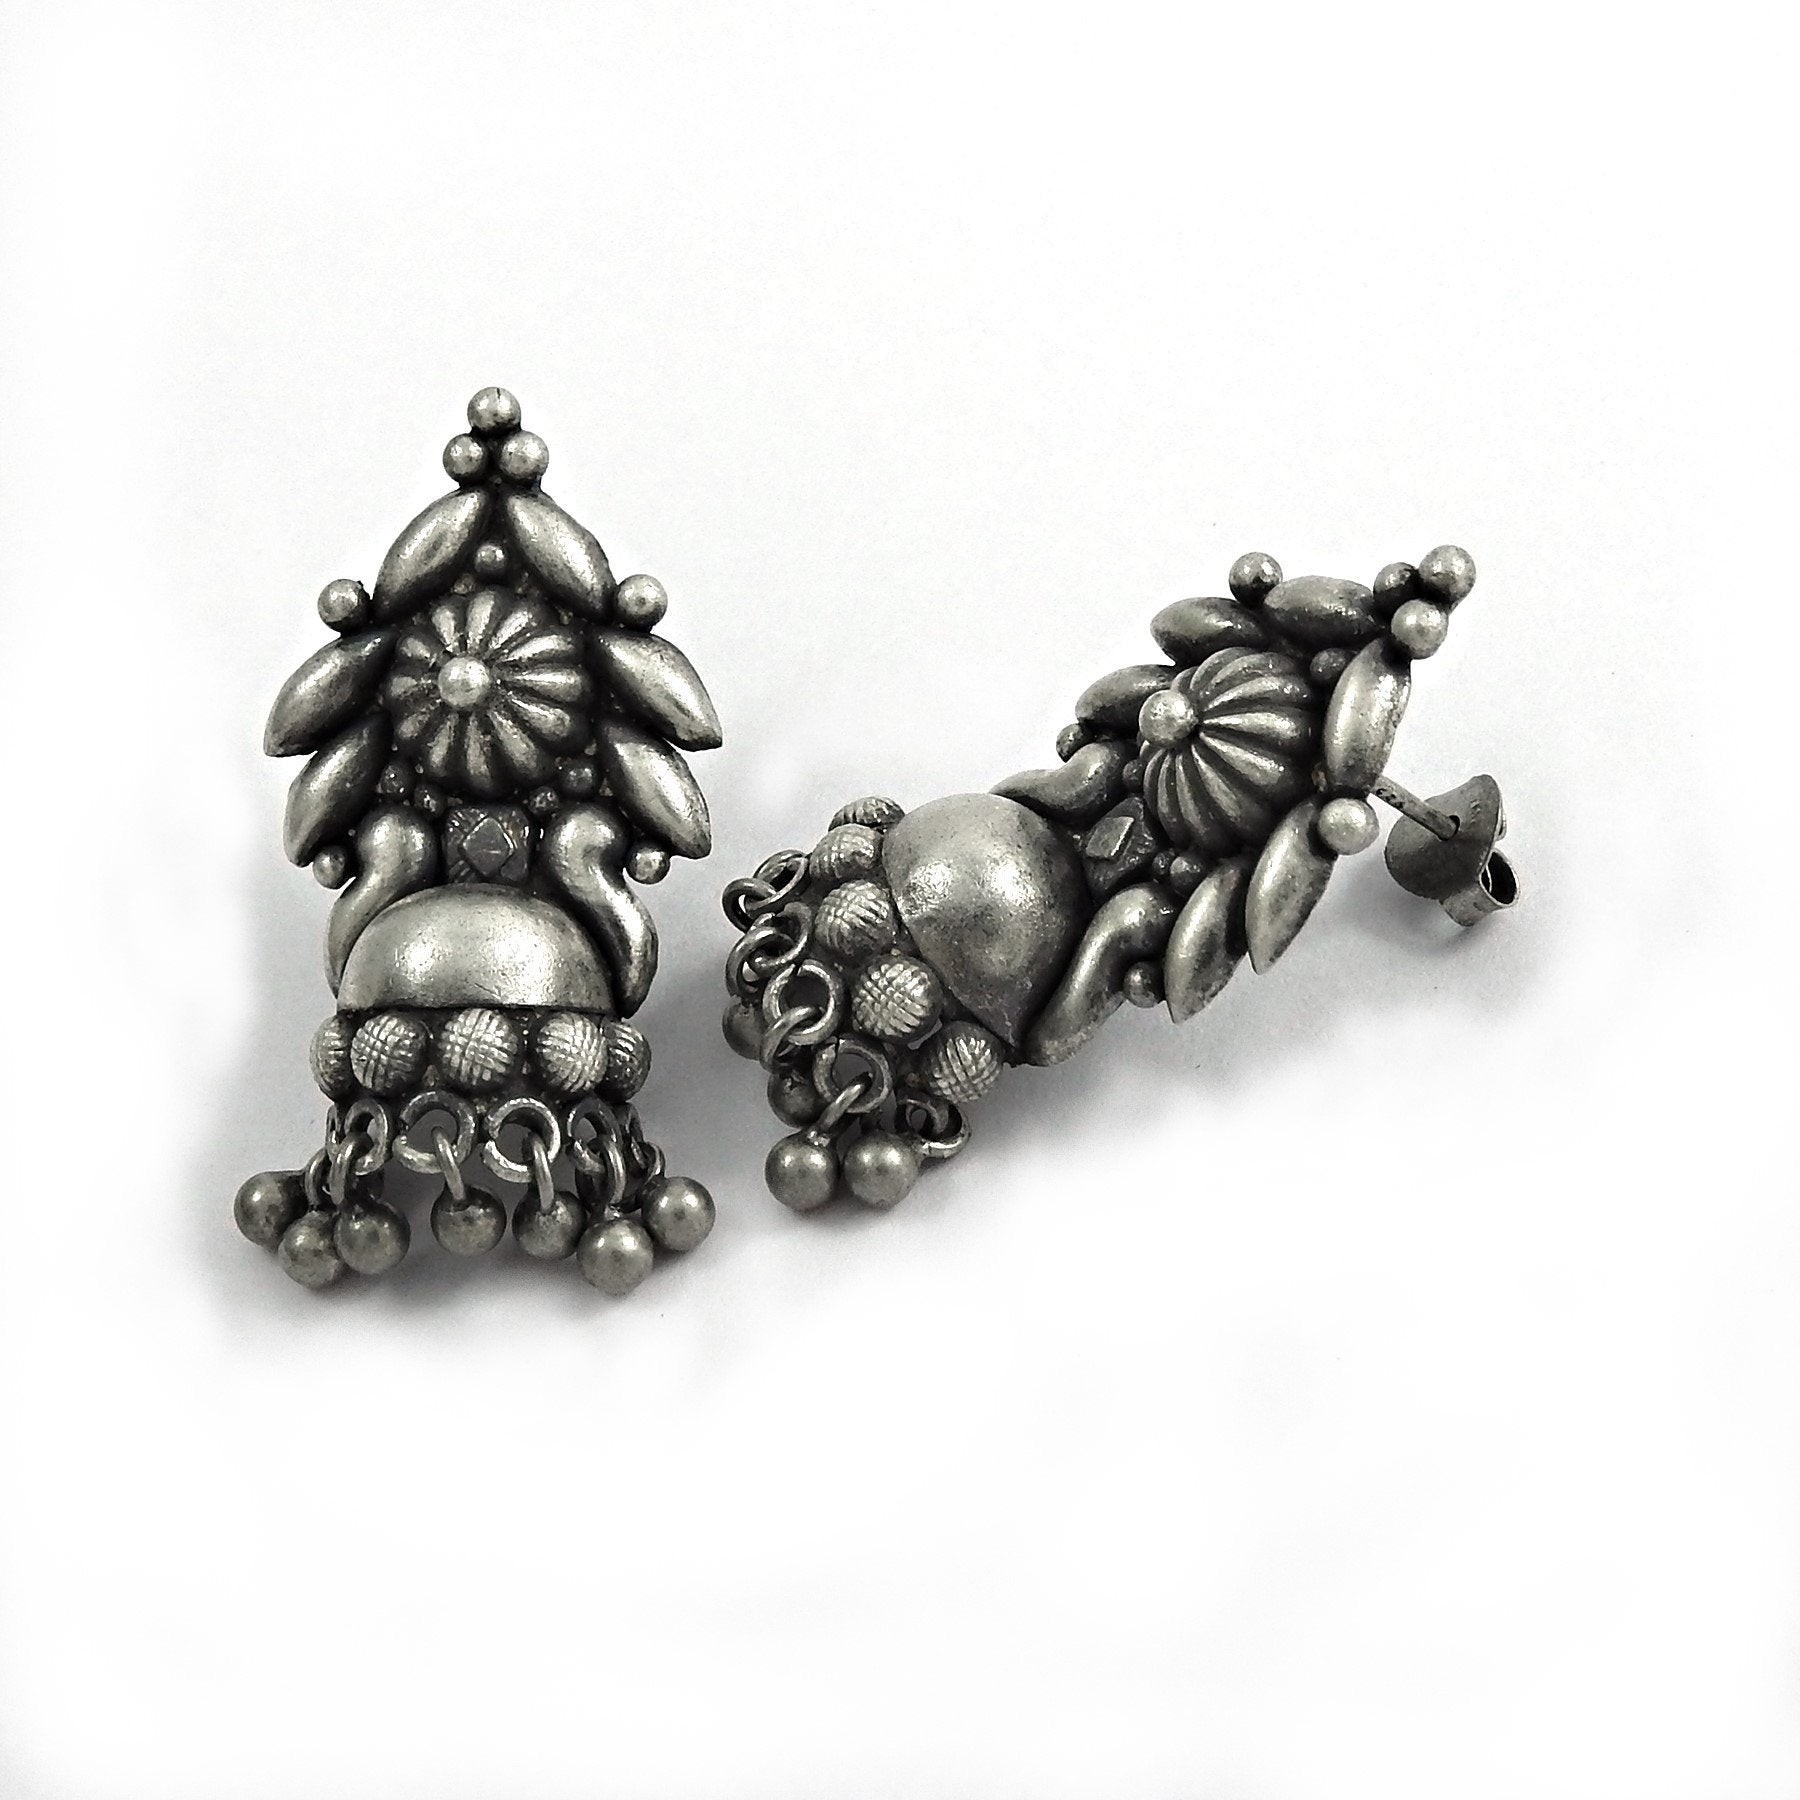 Antique Handmade Oxidized 925 Sterling Silver Earring